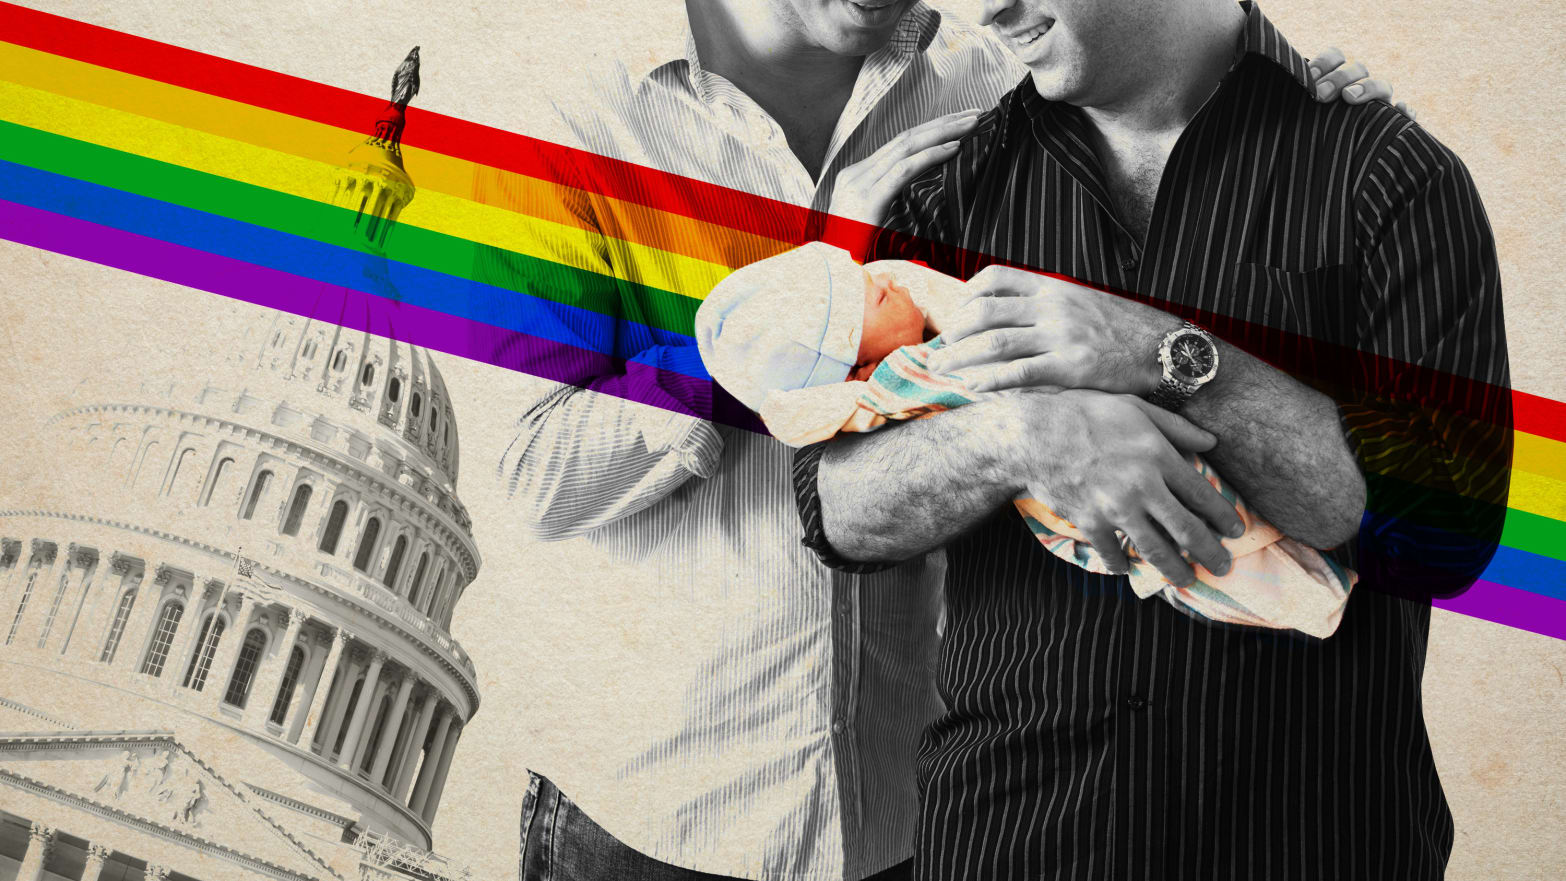 The Absurd: Trump Administration to LGBT Couples: Your 'Out of Wedlock' Kids Aren't Citizens Asd_xgnwzt